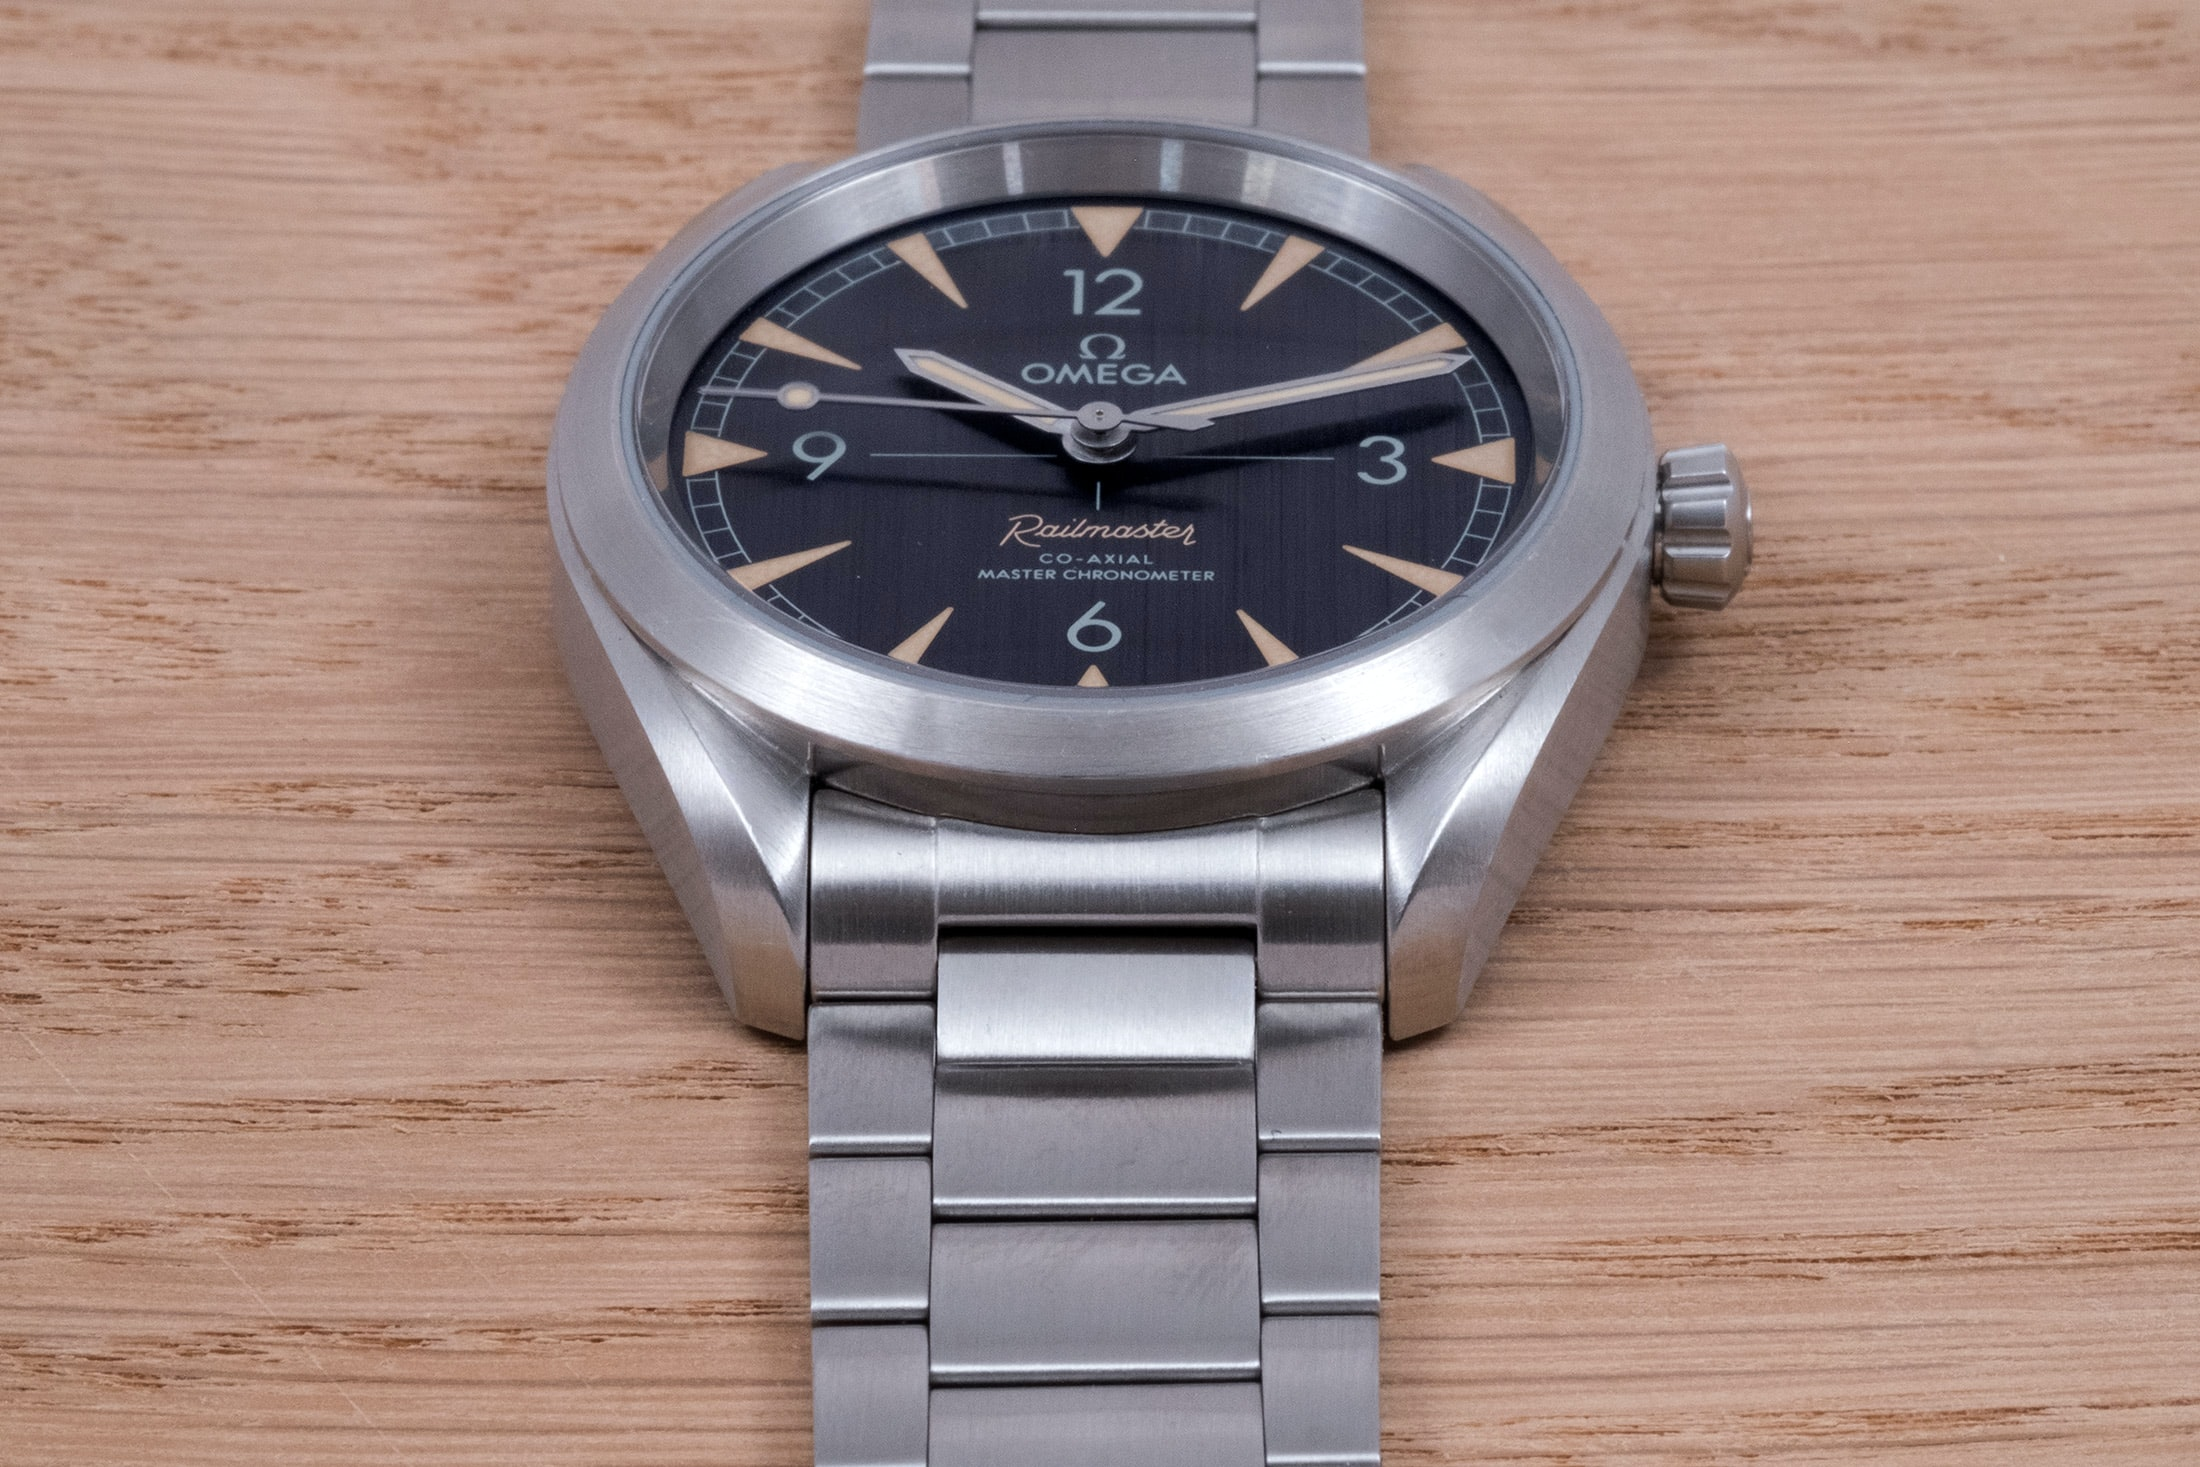 A Week On The Wrist: The Omega Seamaster Railmaster A Week On The Wrist: The Omega Seamaster Railmaster DSCF6146